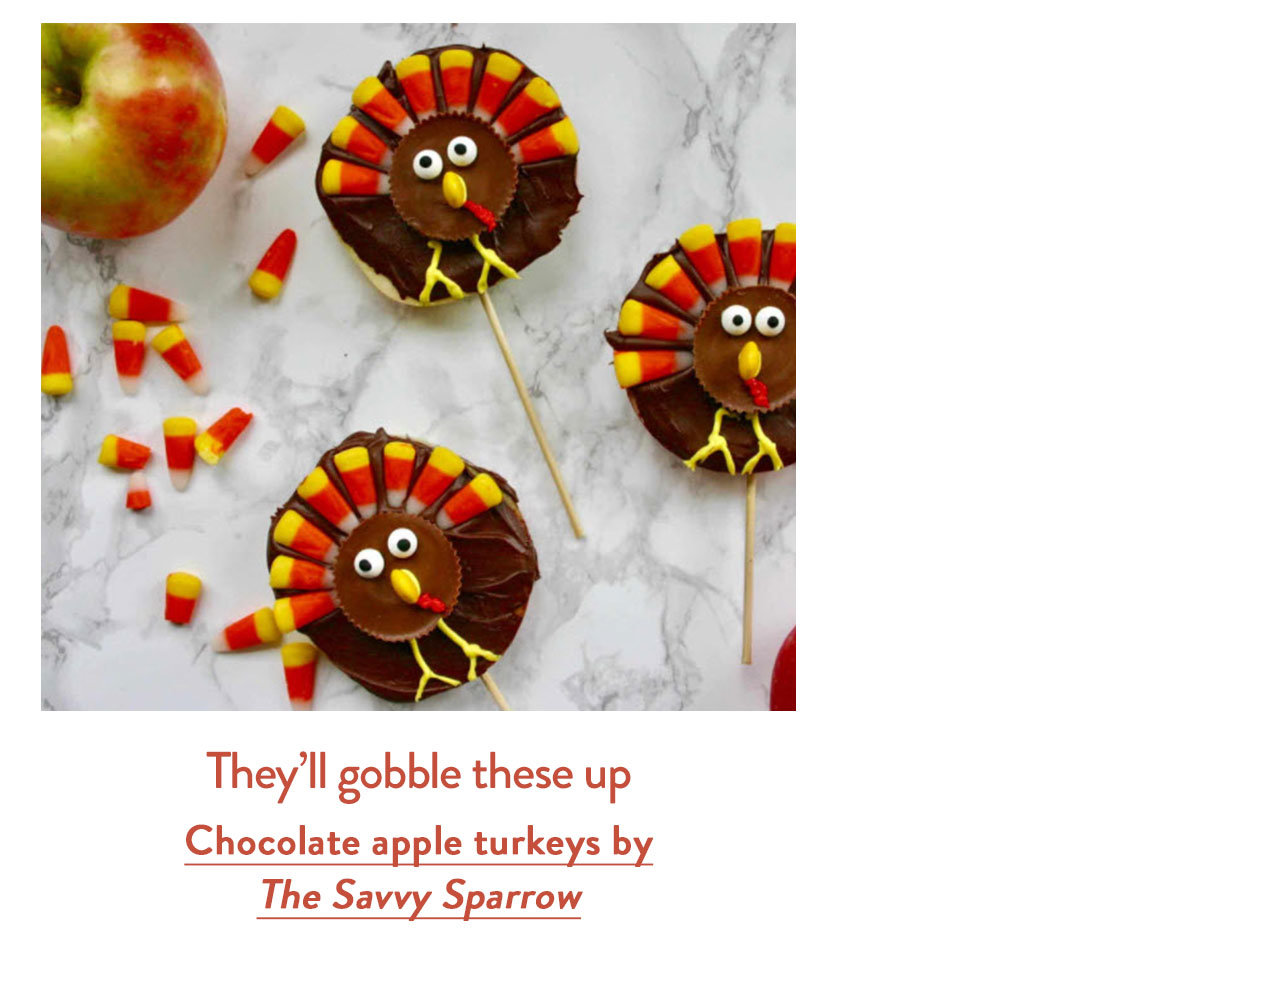 Chocolate apple turkeys by The Savvy Sparrow